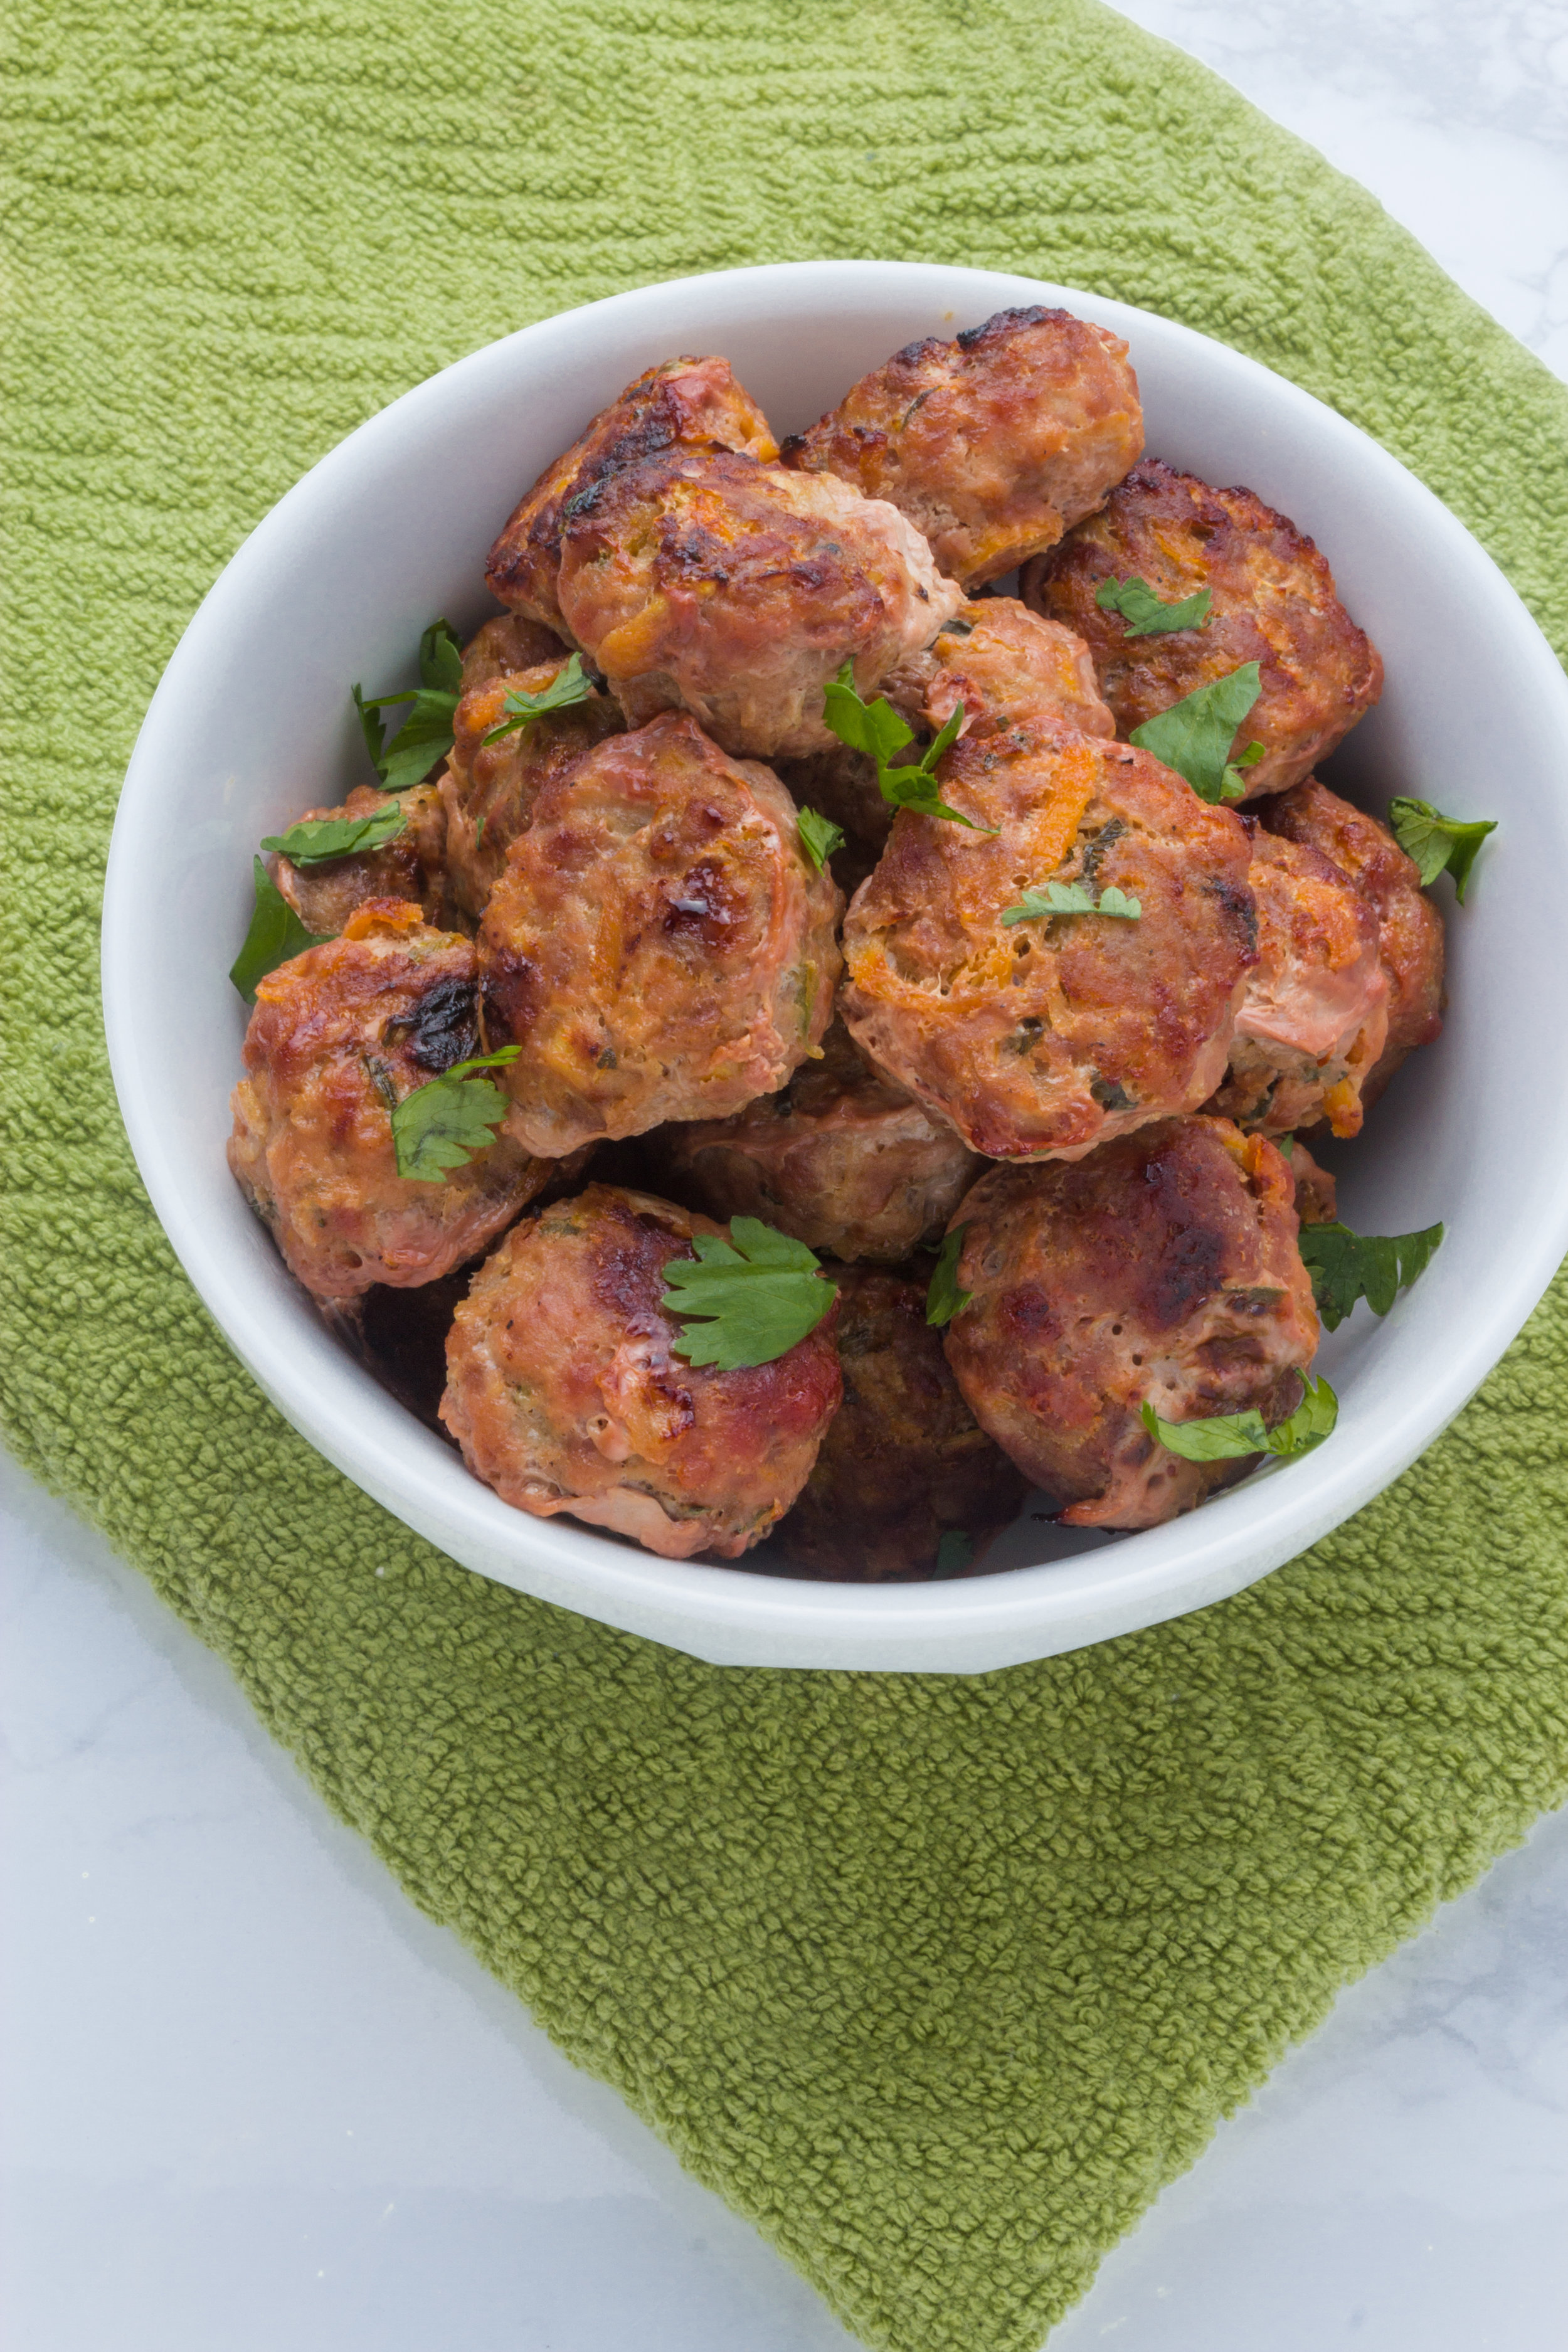 All the delicious flavors of a banh mi sandwich are in each bite of these meatballs.